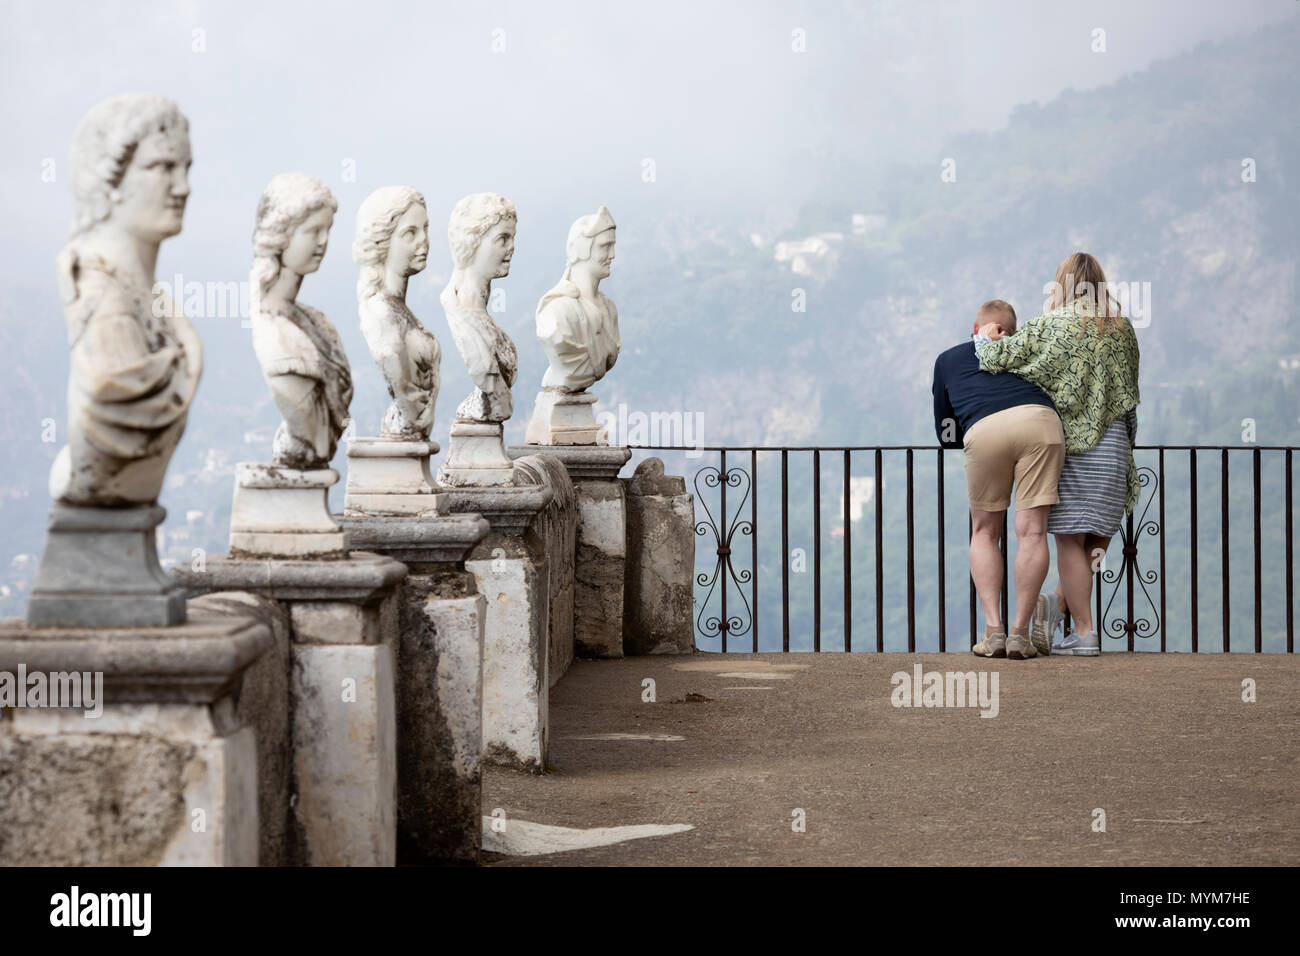 Marble busts in the formal gardens of Villa Cimbrone, Ravello, The Amalfi Coast, Campania, Italy, Europe - Stock Image